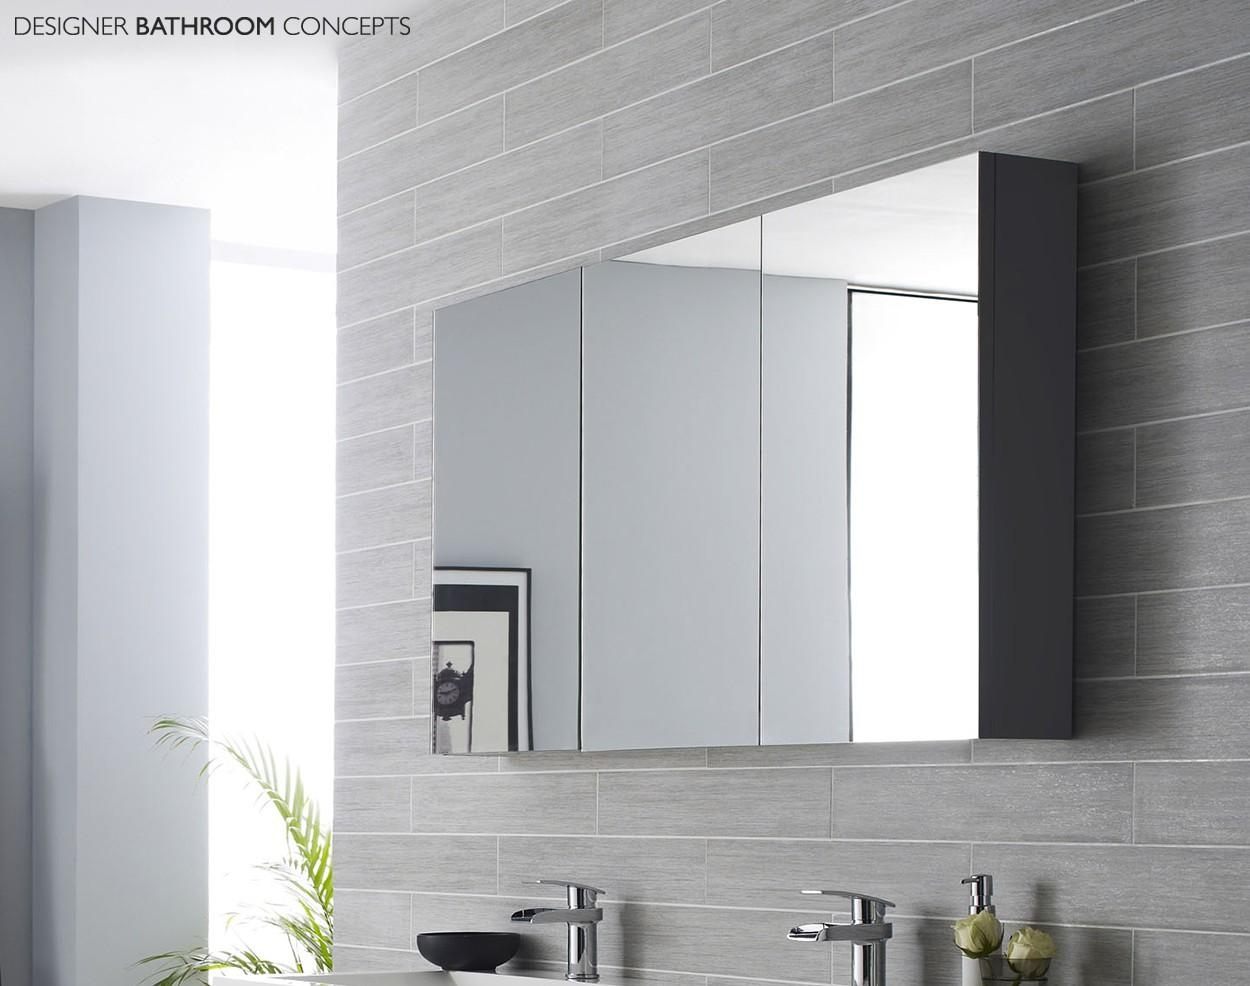 Surprising Large Mirrored Bathroom Cabinet Wall Mirror For With In Bathroom Cabinets Mirrors (Image 18 of 20)